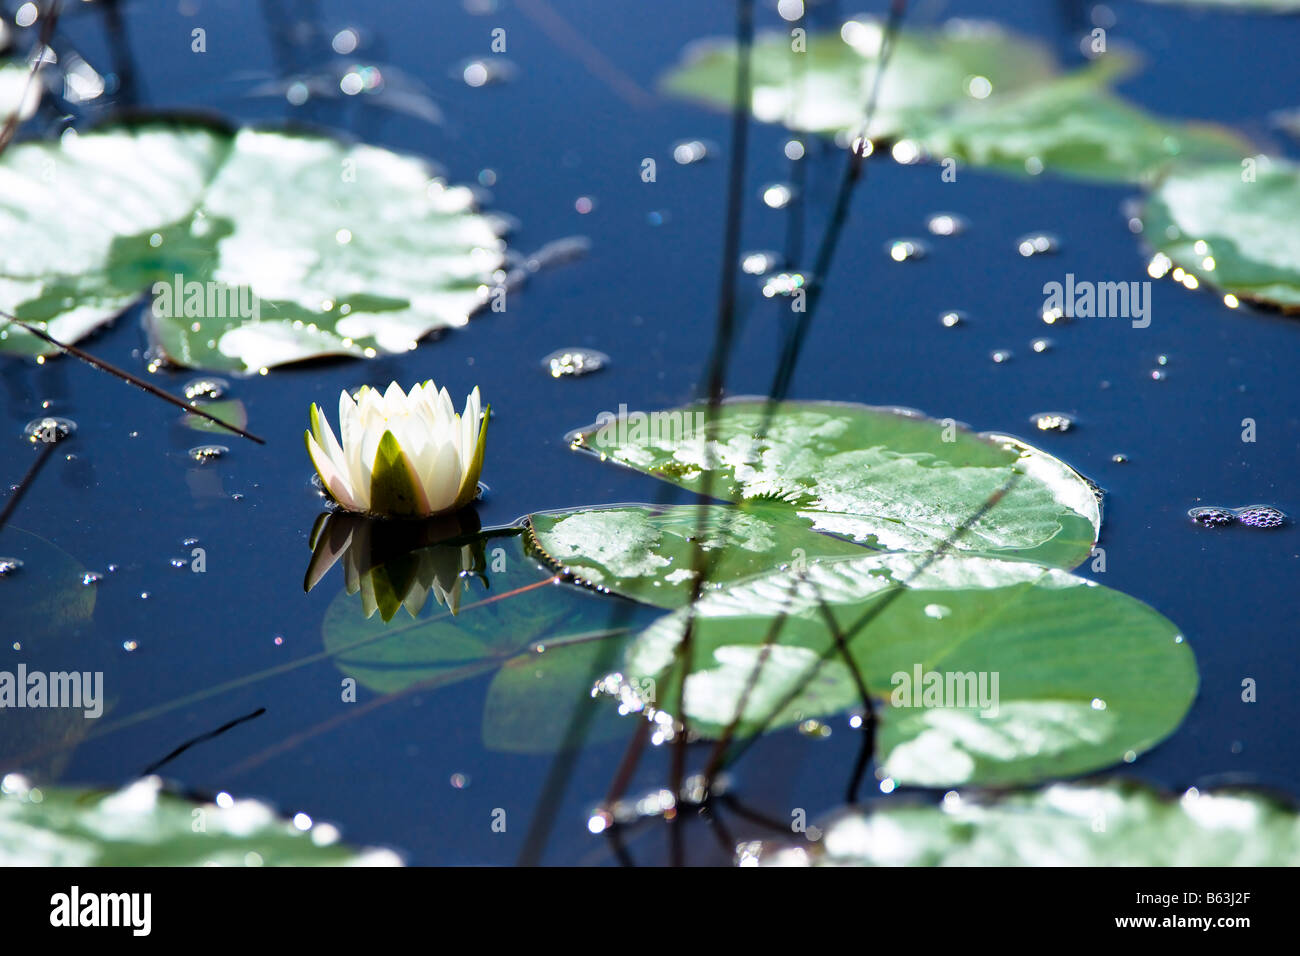 Lilly Pad Stock Photos & Lilly Pad Stock Images - Alamy